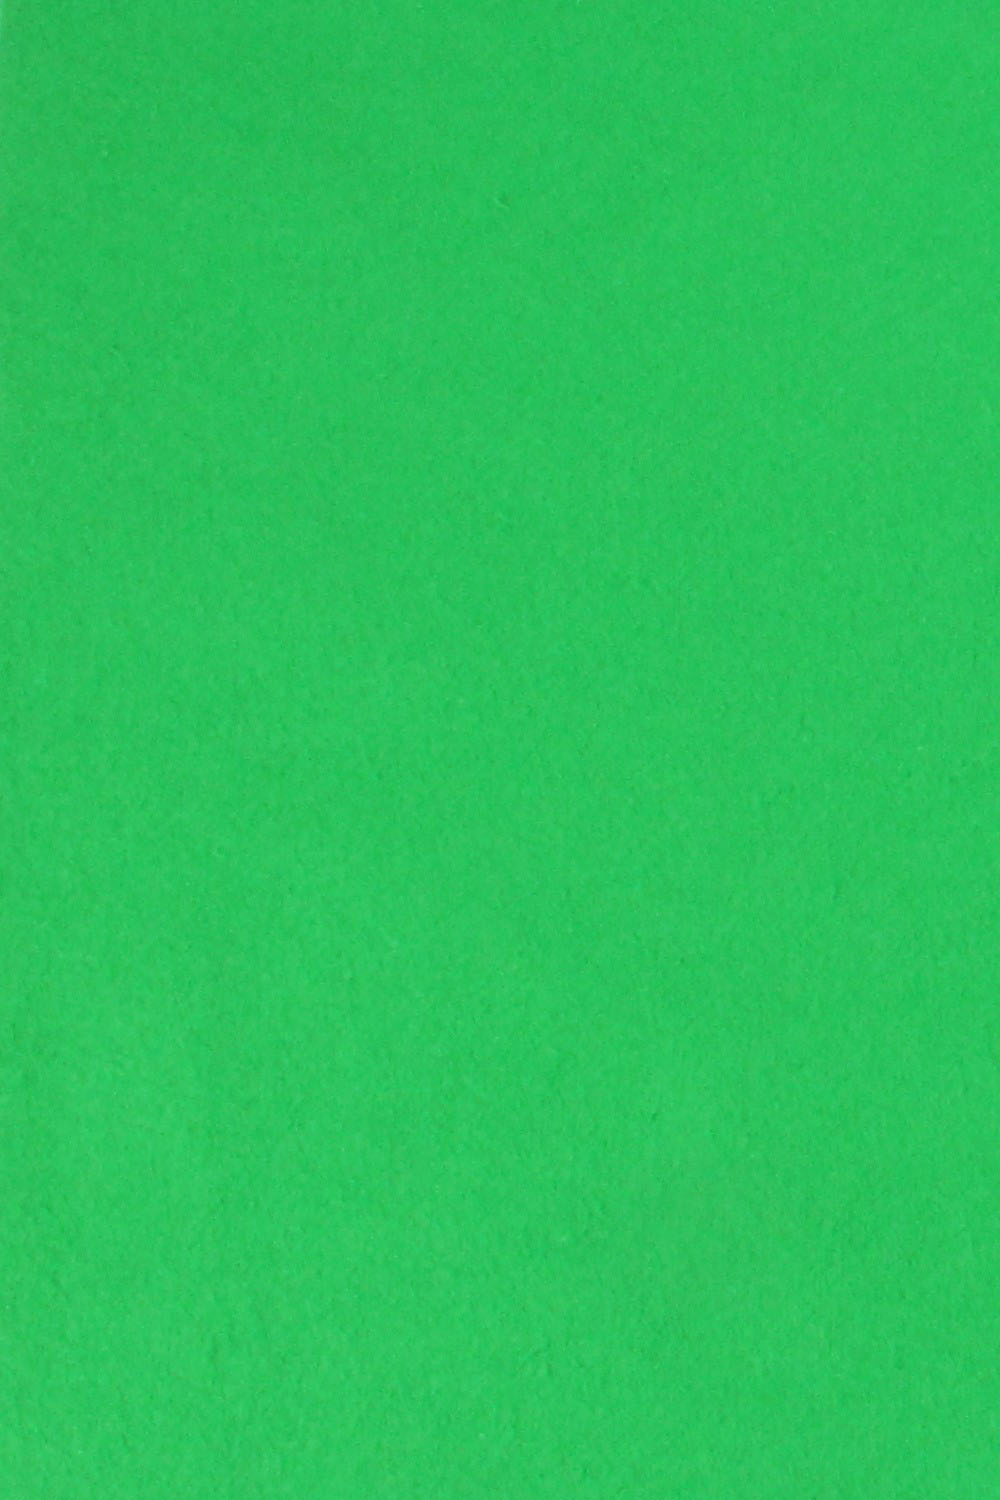 HB GRIP ROMANIA, Lighting accessories, Chromakey Green Solid